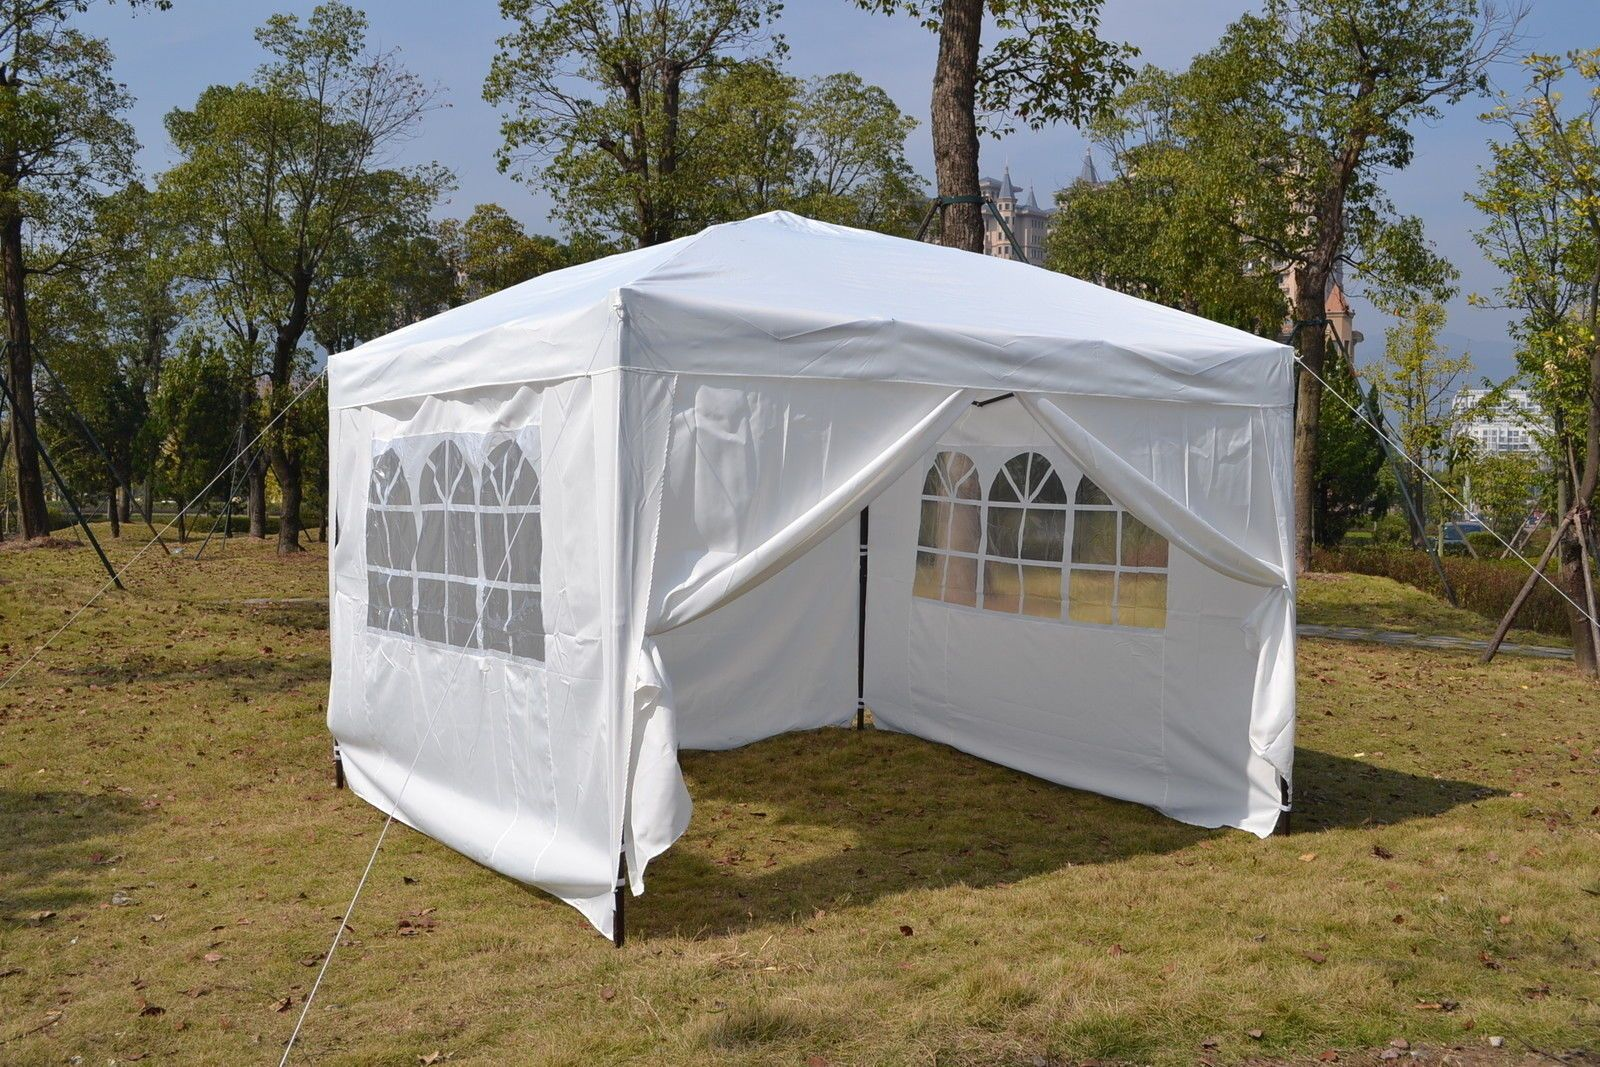 Mcombo 10x10 10x20 Ez Pop Up Wedding Party Tent Folding Gazebo Canopy W Sides Gazebo Tent Party Tent